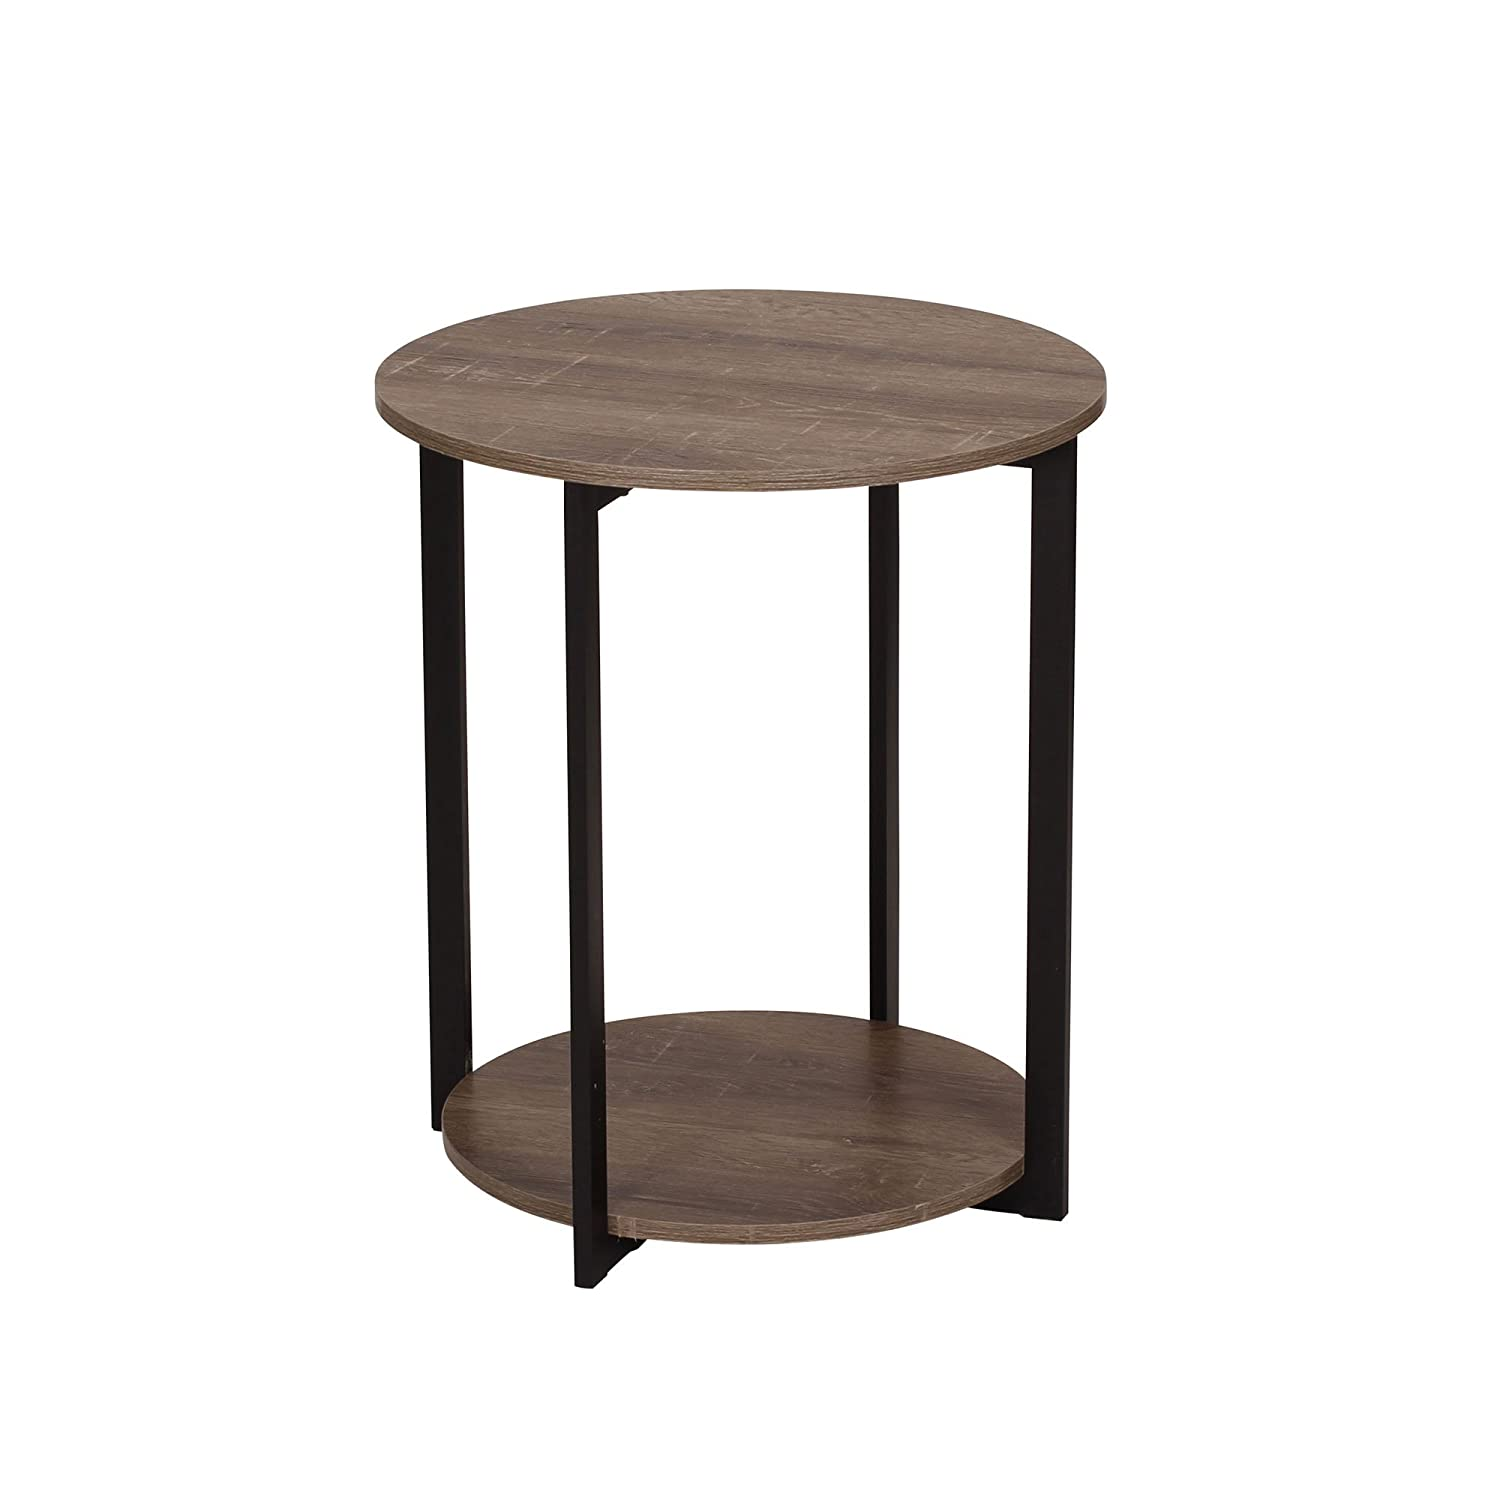 Household Essentials 8080-1 Wooden Side End Table with Storage Shelf | Ashwood